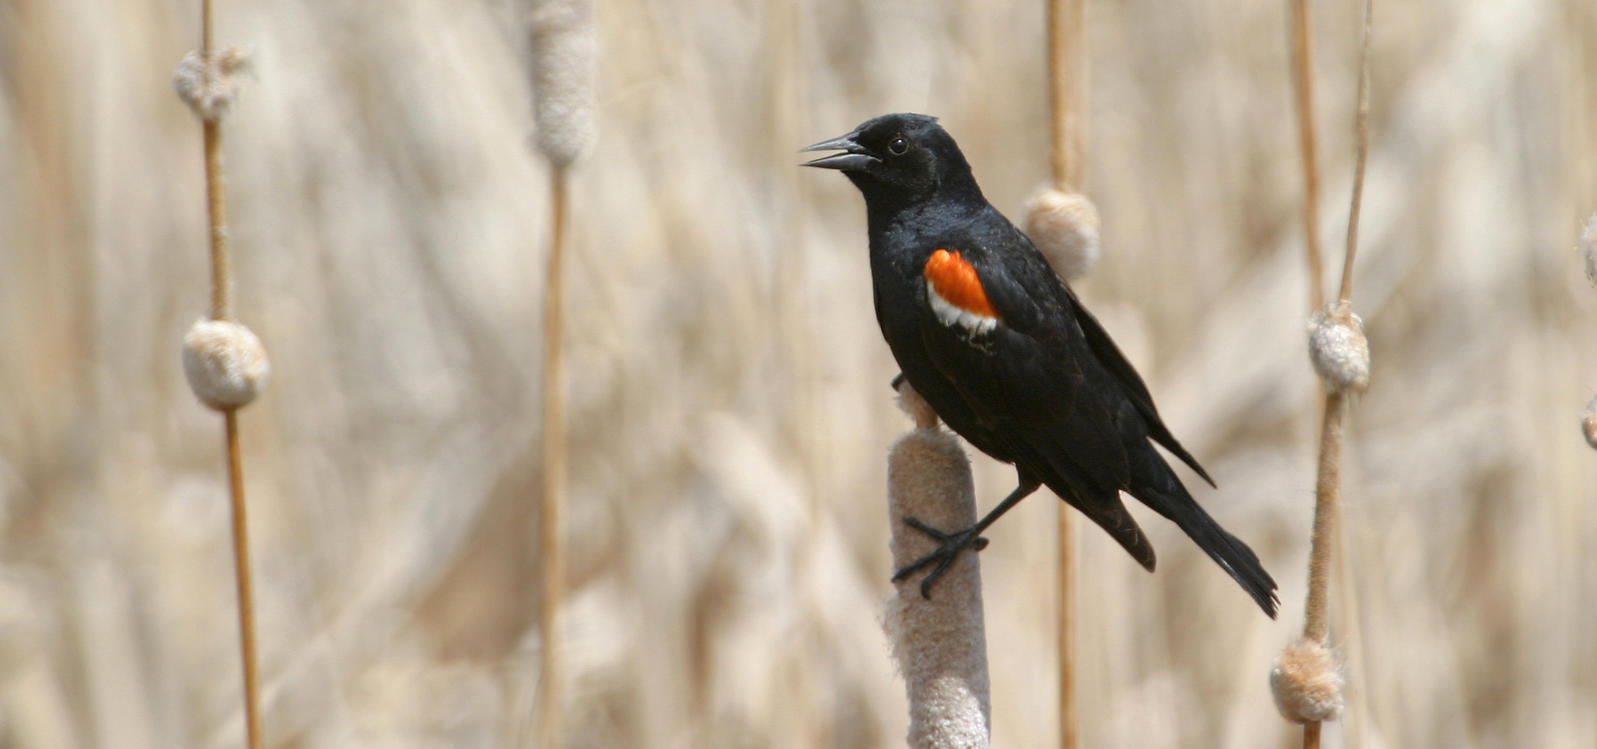 Saving the Tricolored Blackbird